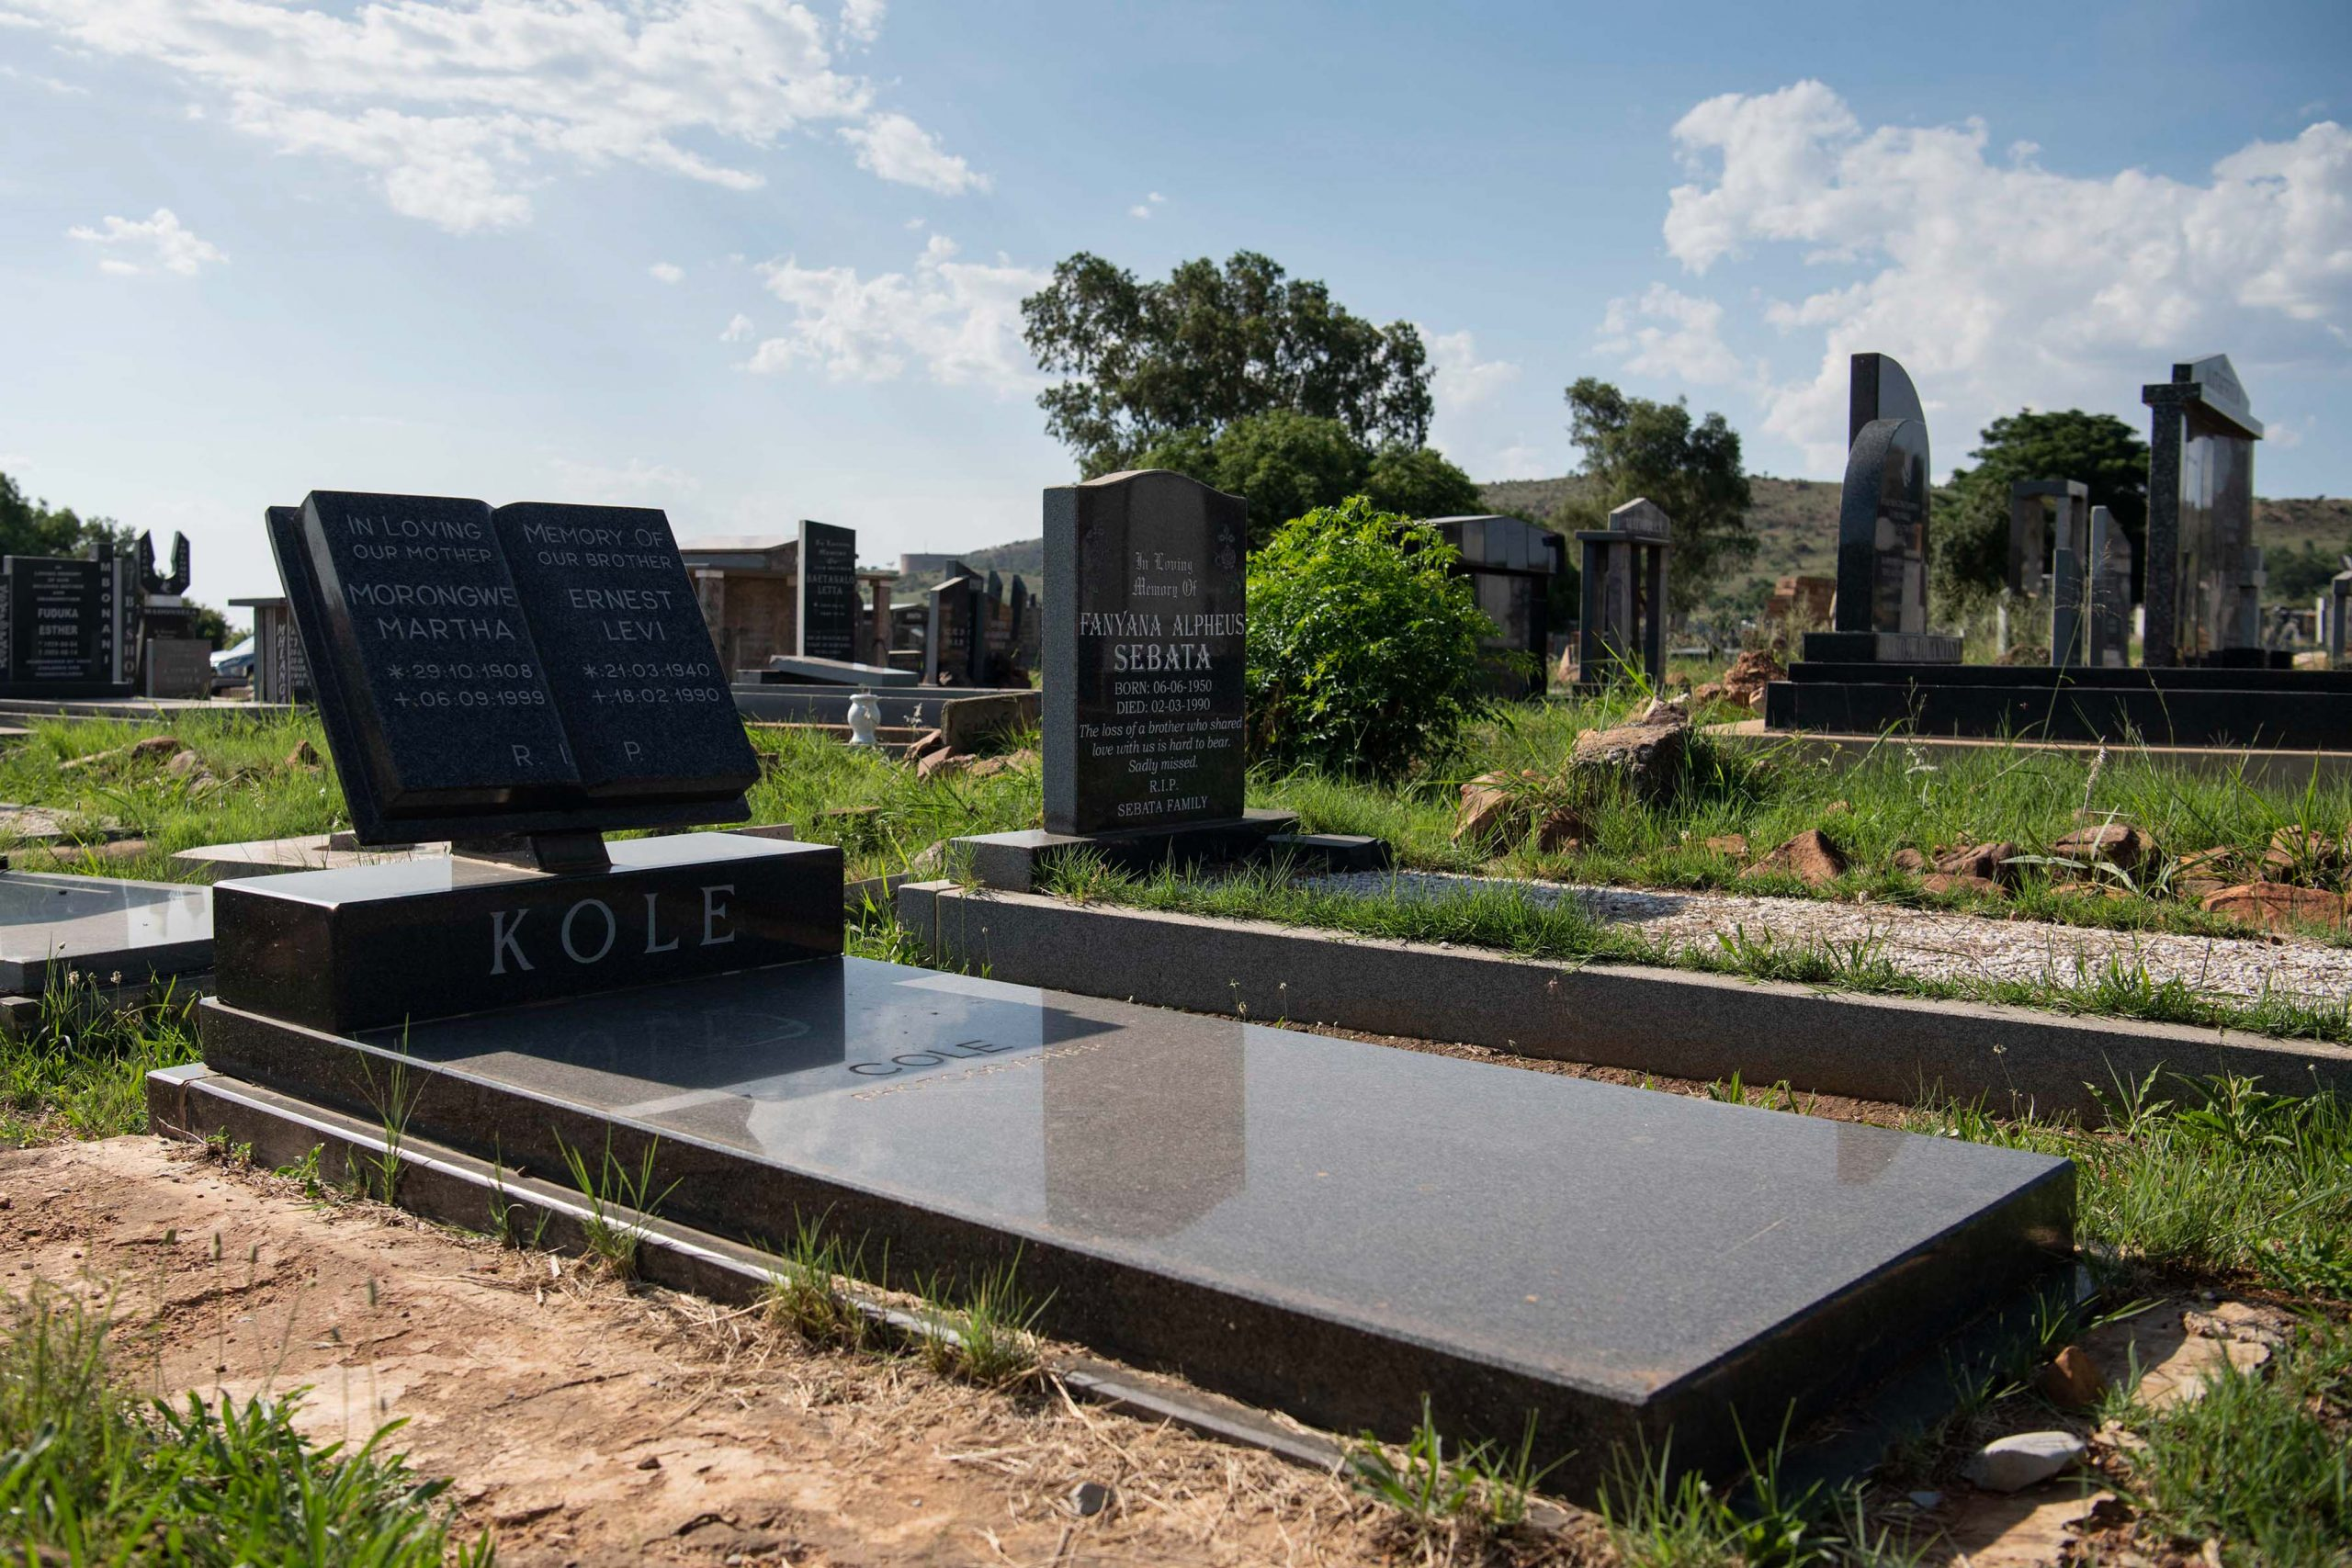 3 December 2019: Ernest Cole's grave in the Mamelodi cemetery.